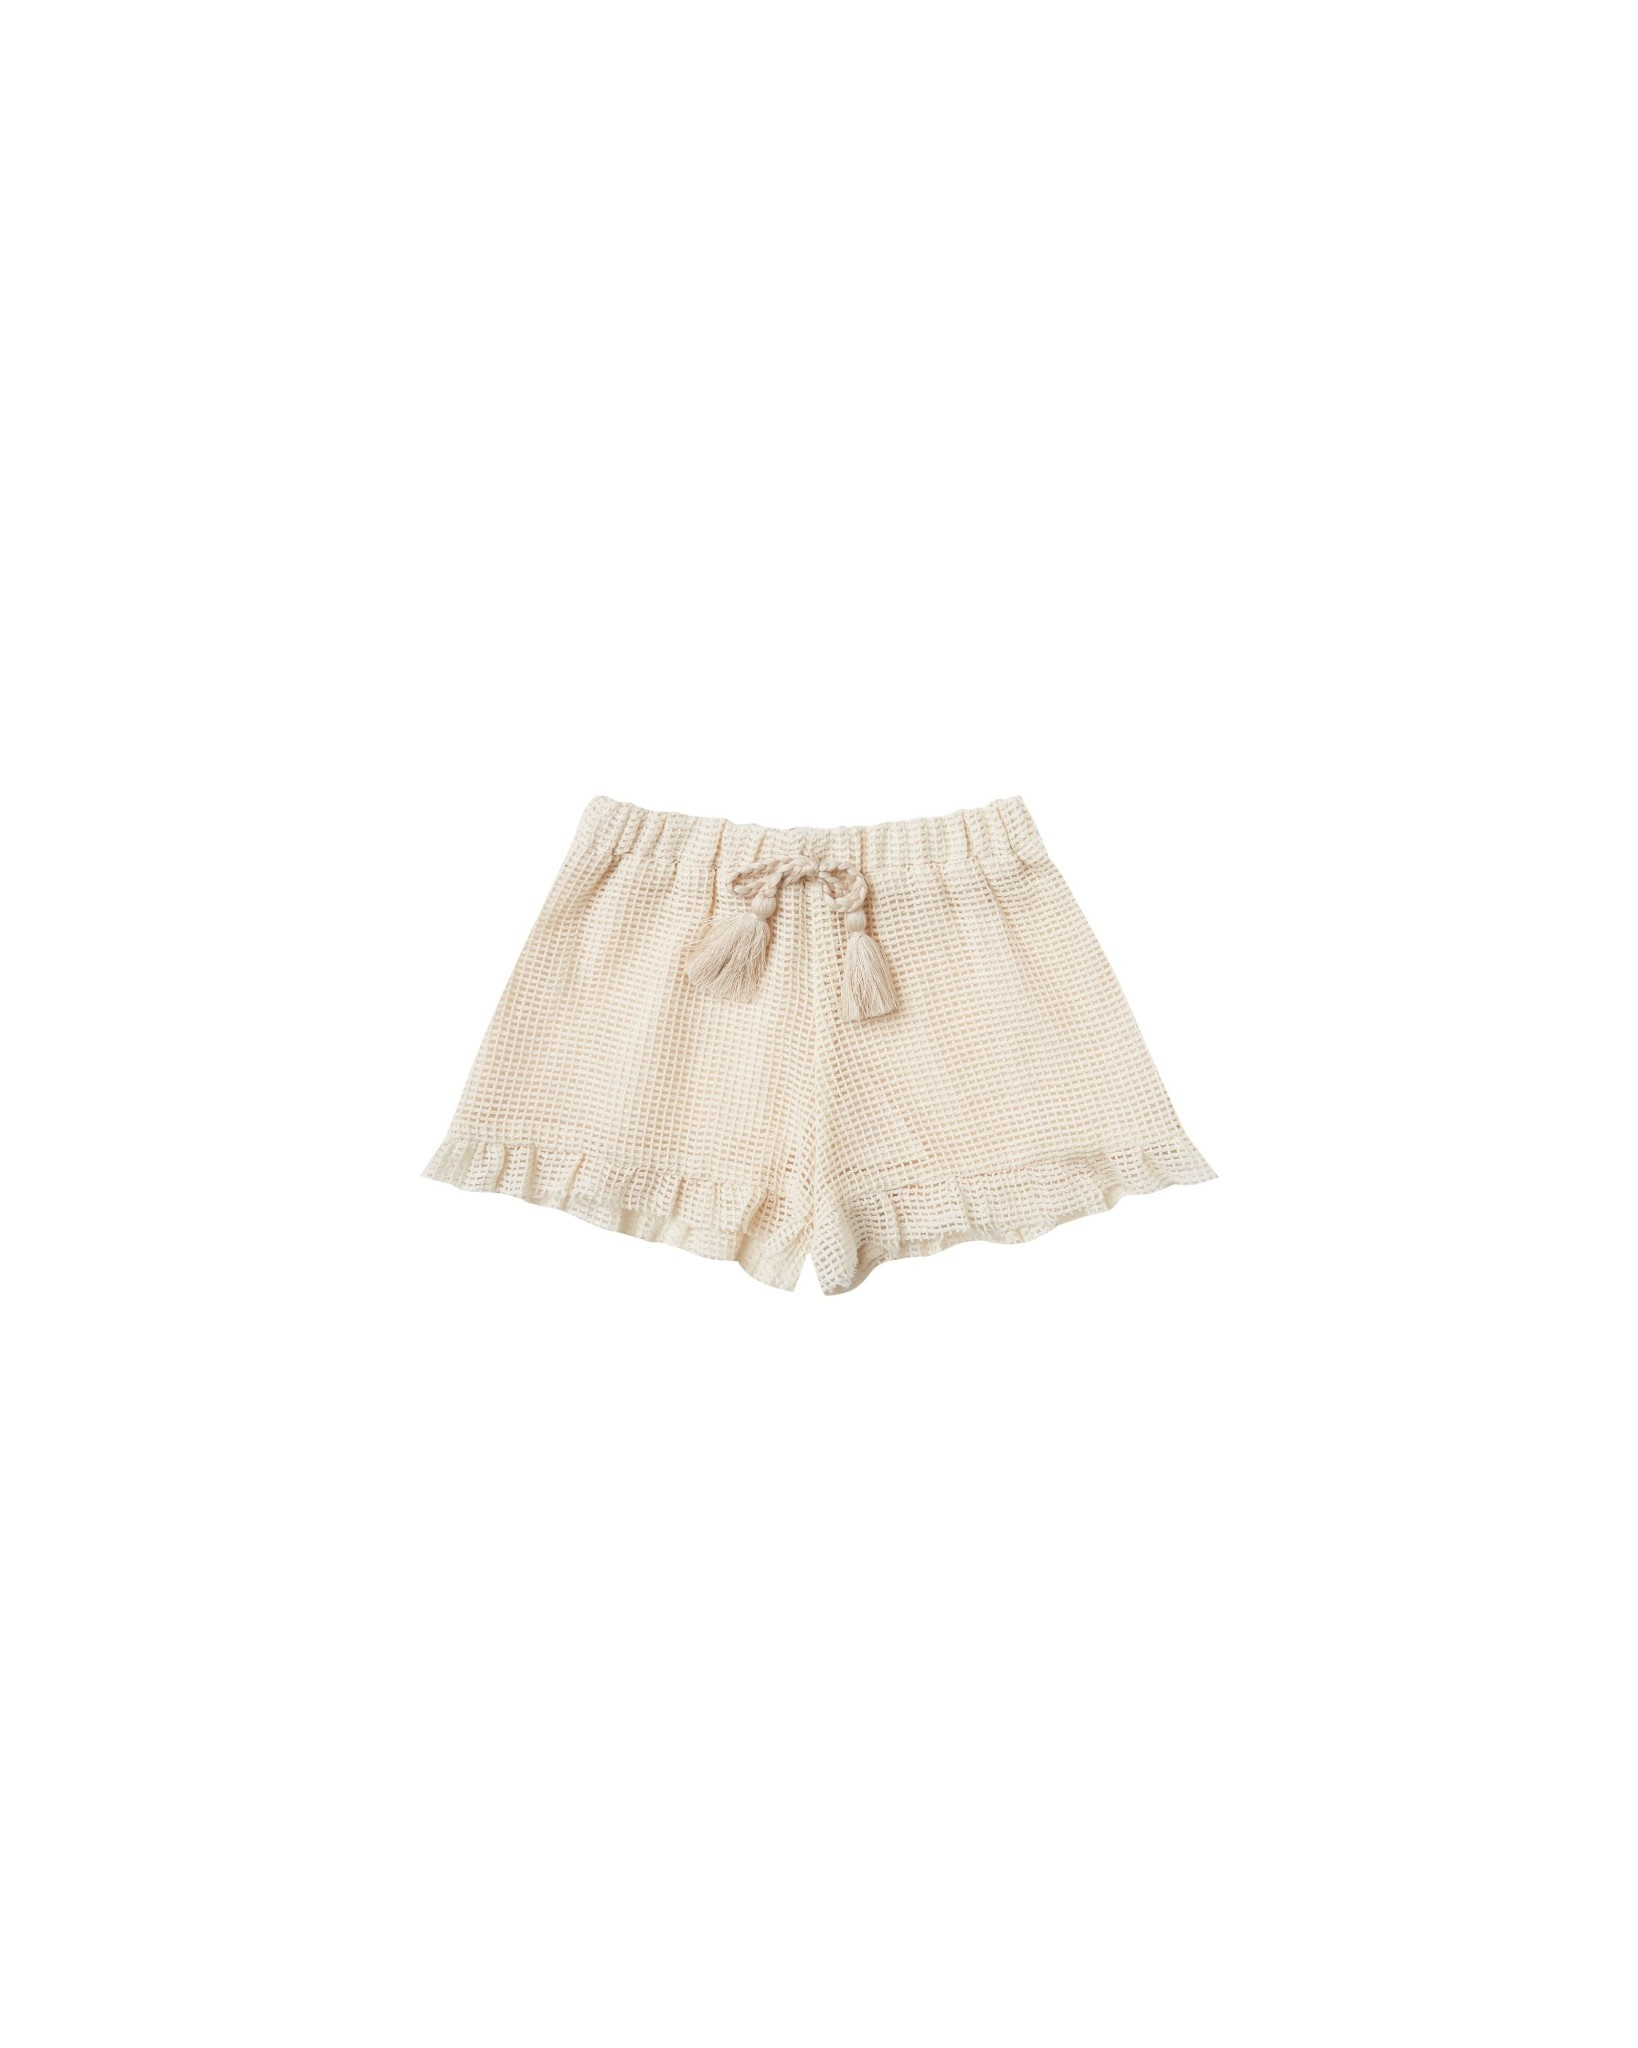 RYLEE AND CRU Cardiff Ruffle Short